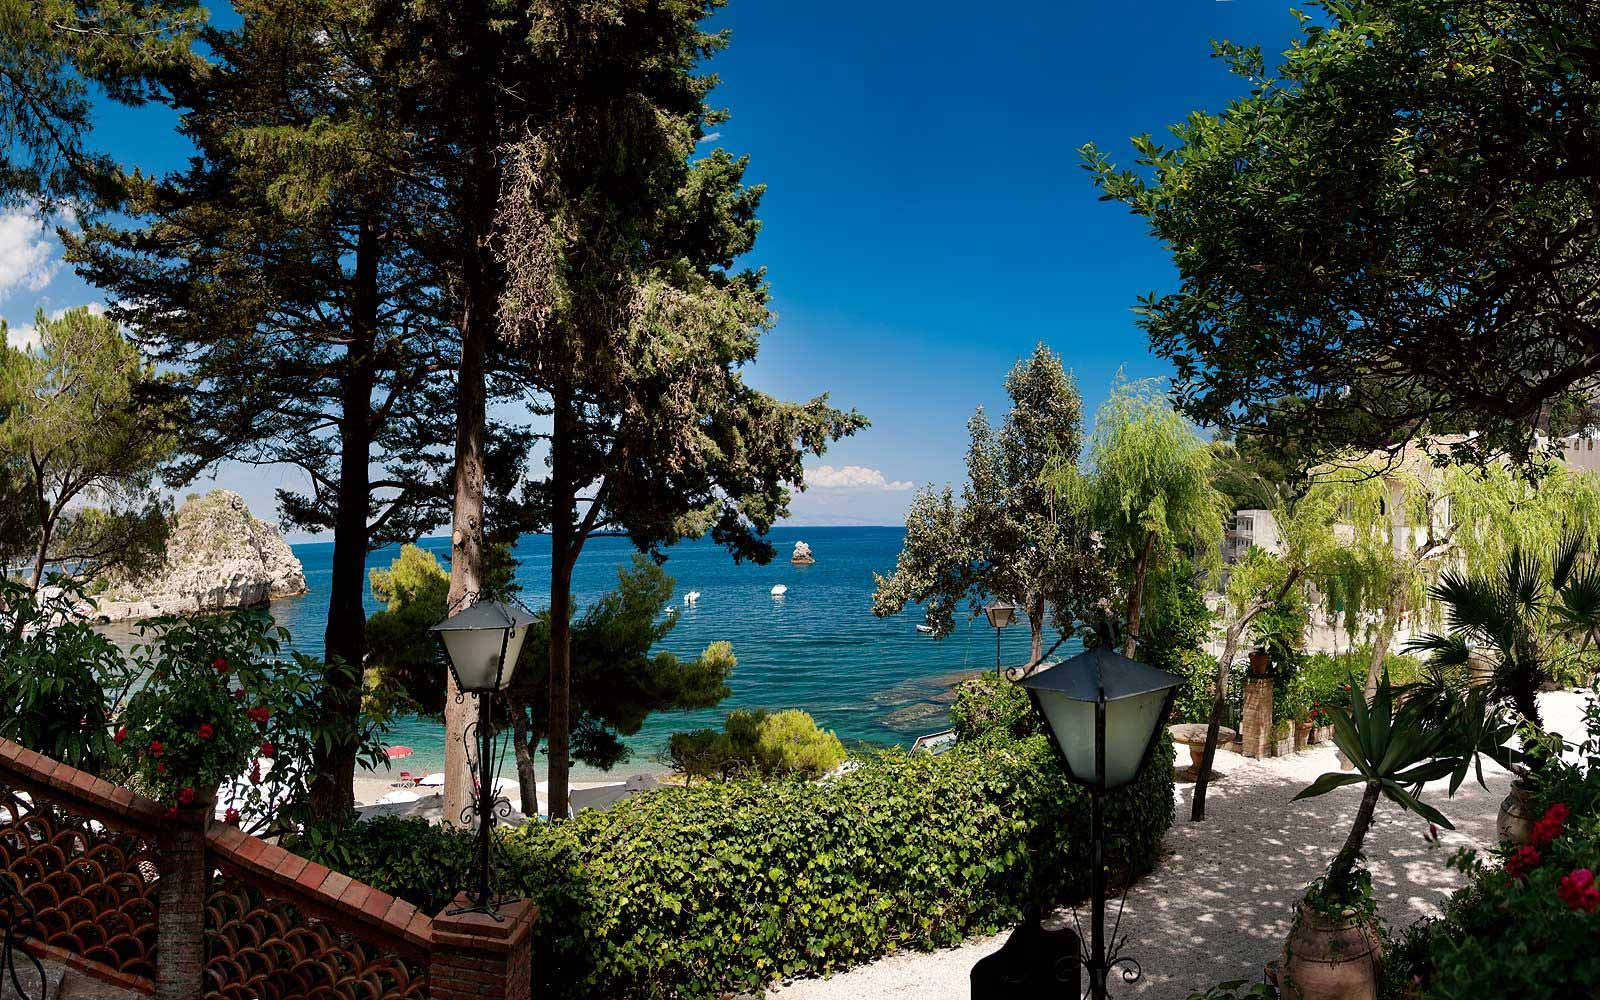 Private gardens at the Belmond Villa Sant' Andrea